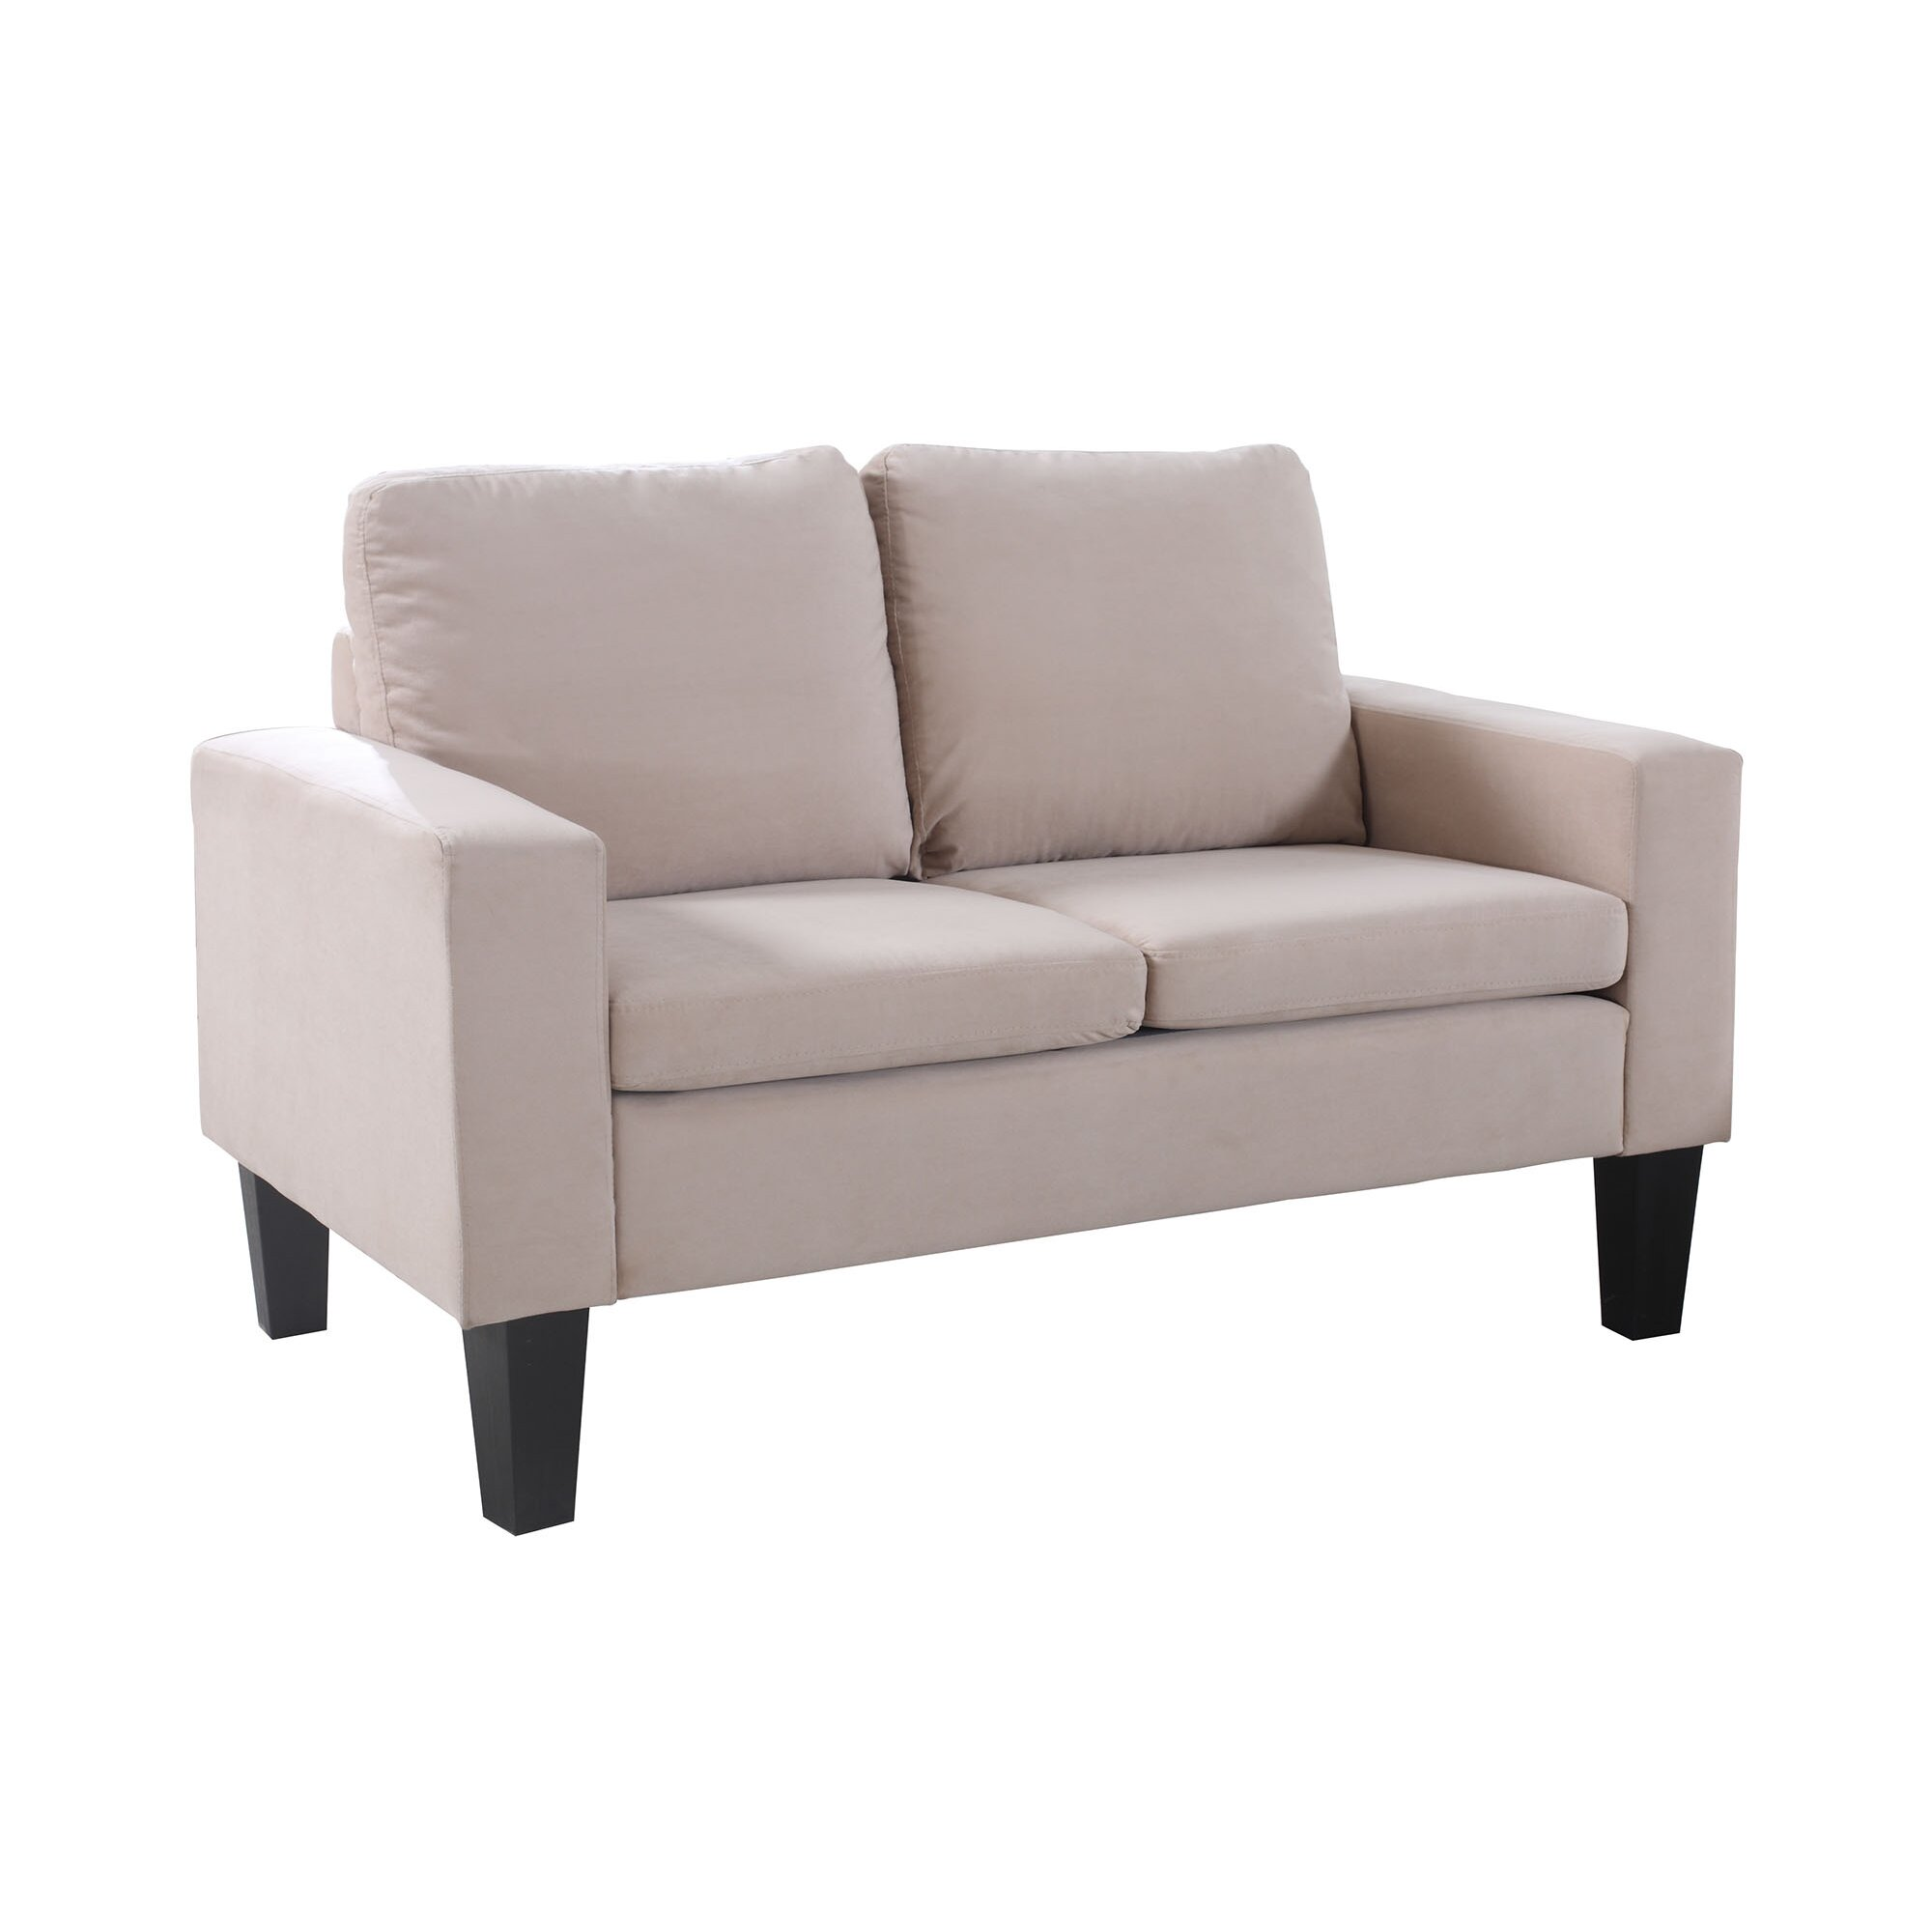 NathanielHome Sarah Microfiber Loveseat & Reviews